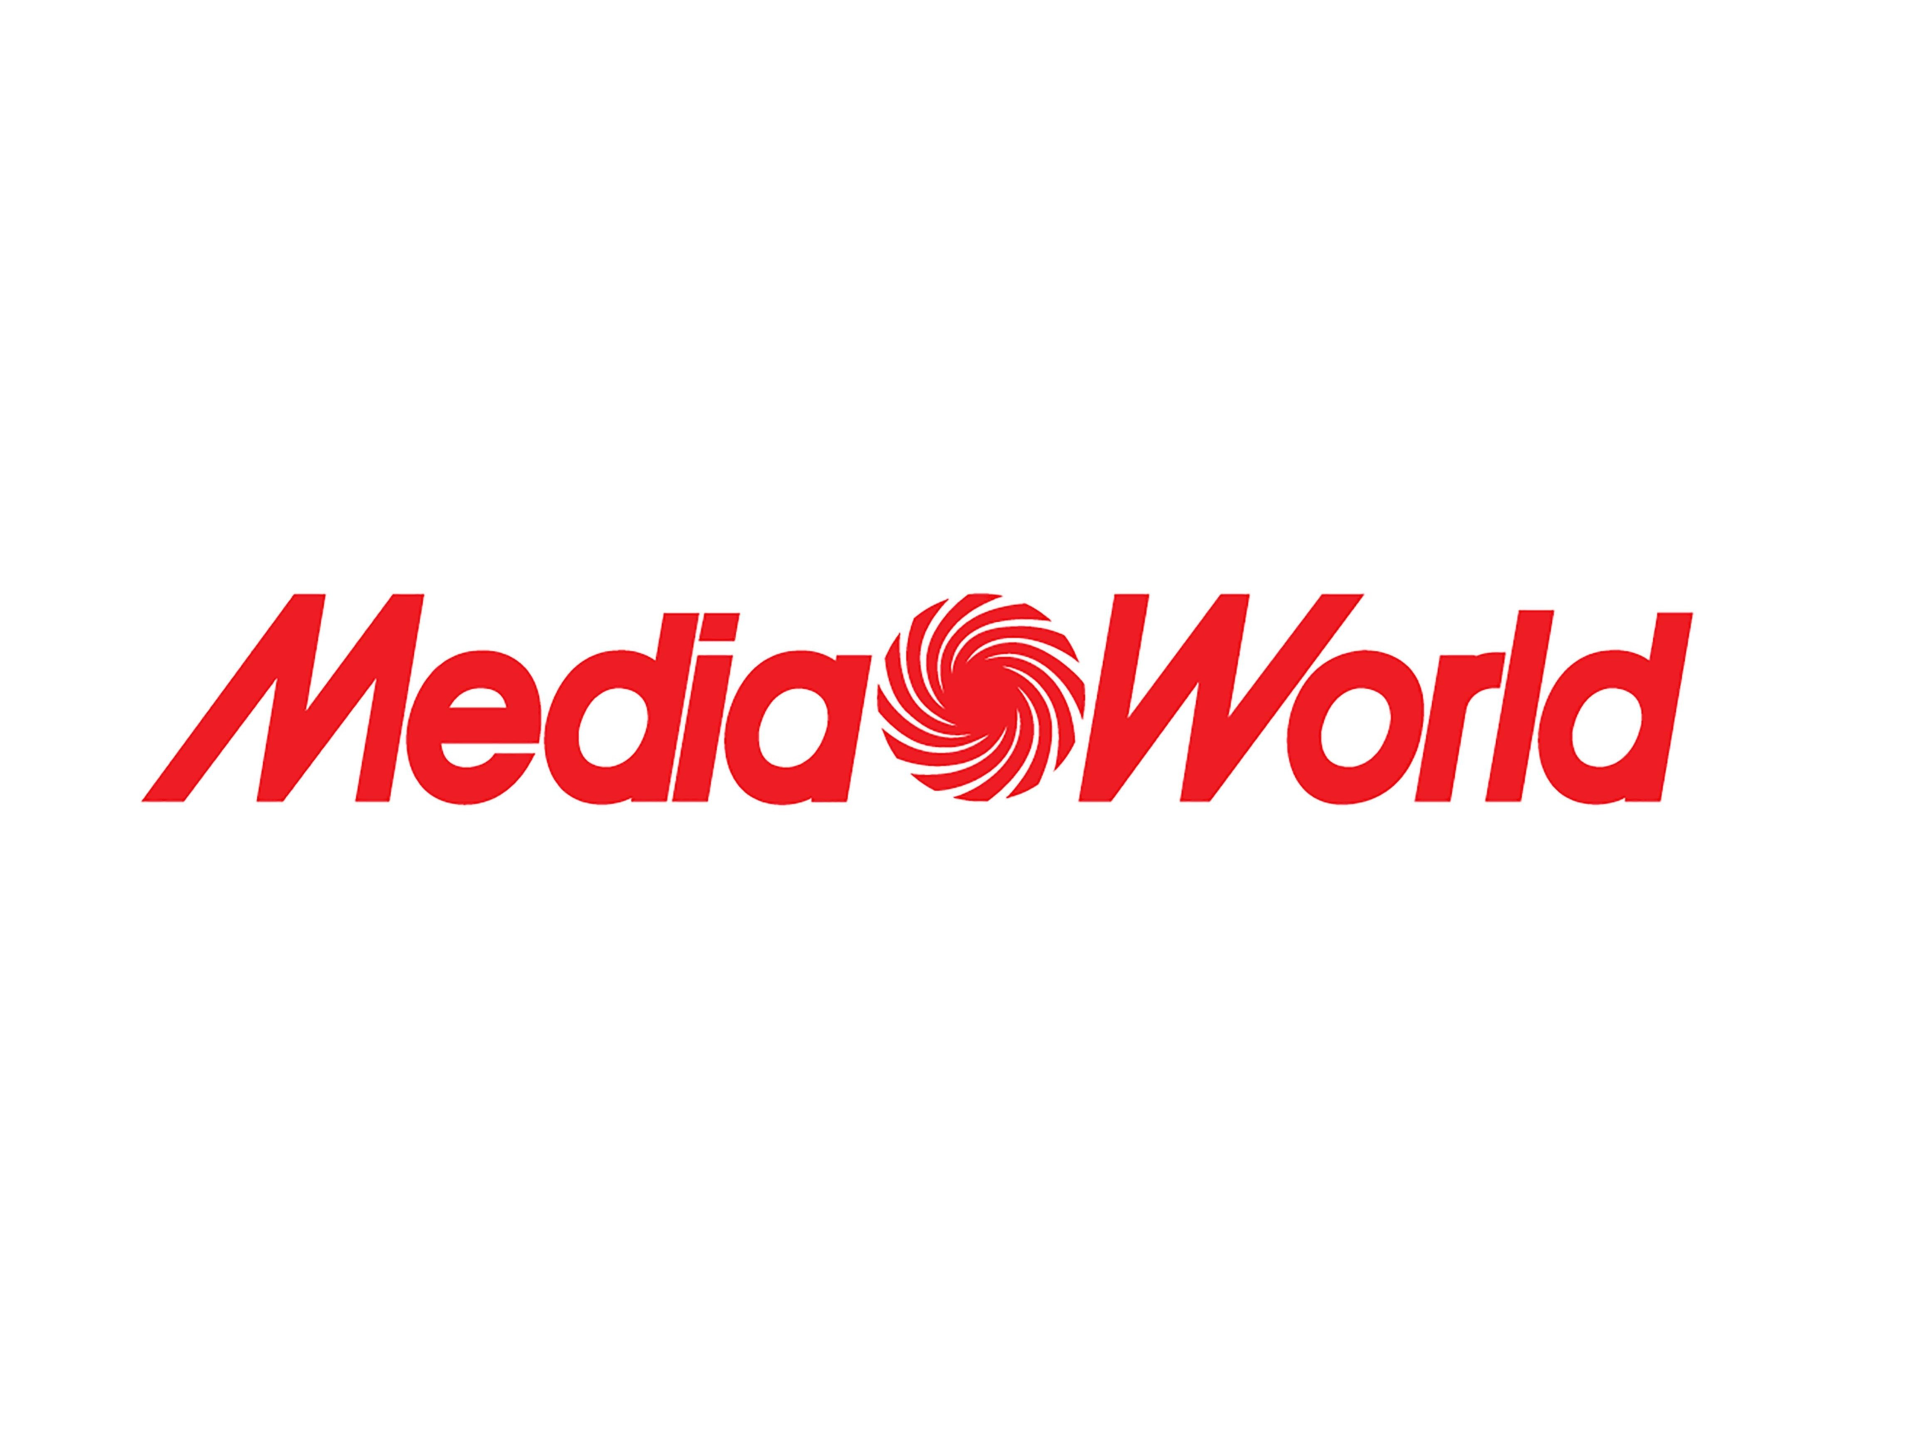 Iniziamo il weekend in bellezza con le offerte MediaWorld So